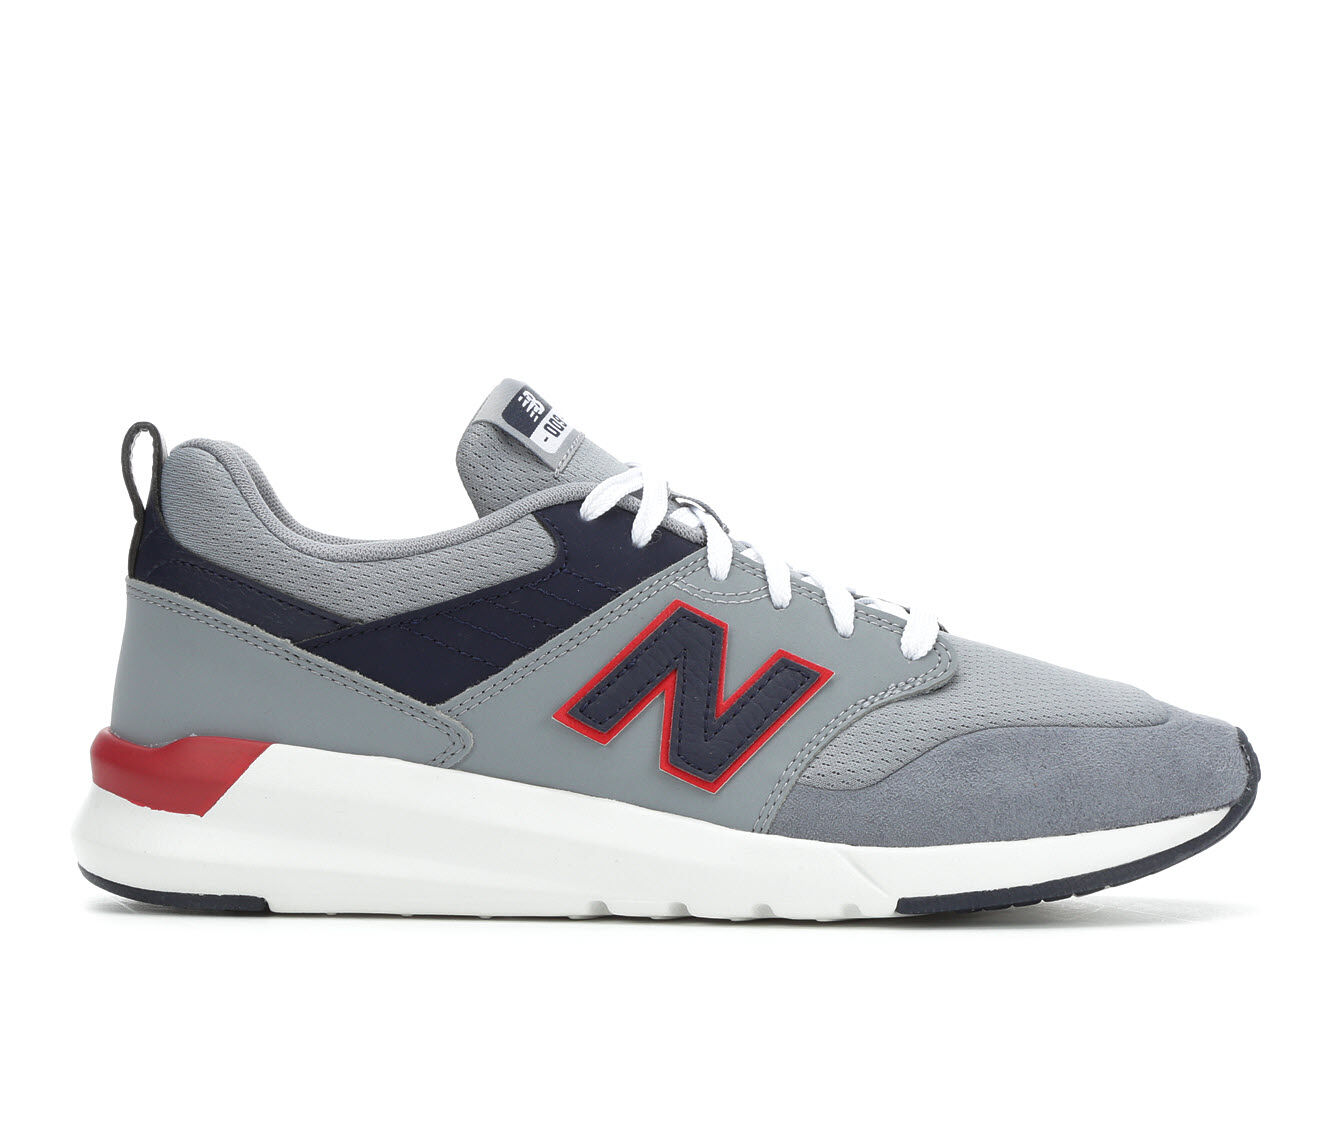 autumn styles Men's New Balance 009 Retro Sneakers Gry/Navy/Red